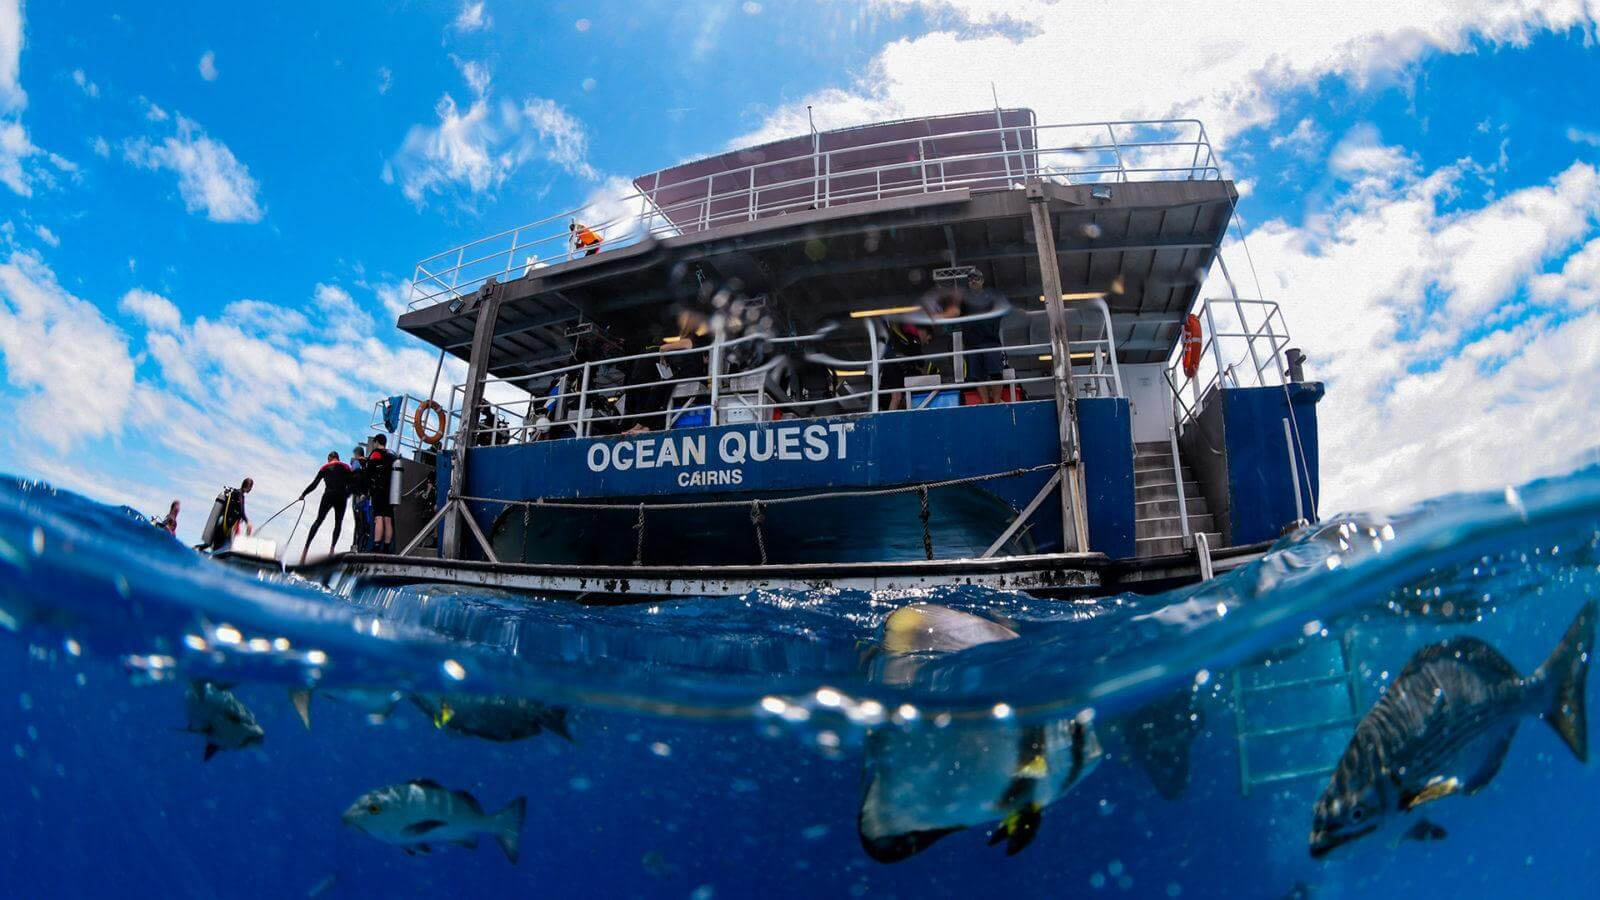 Liveabroad on Ocean Quest Cairns by Divers Den